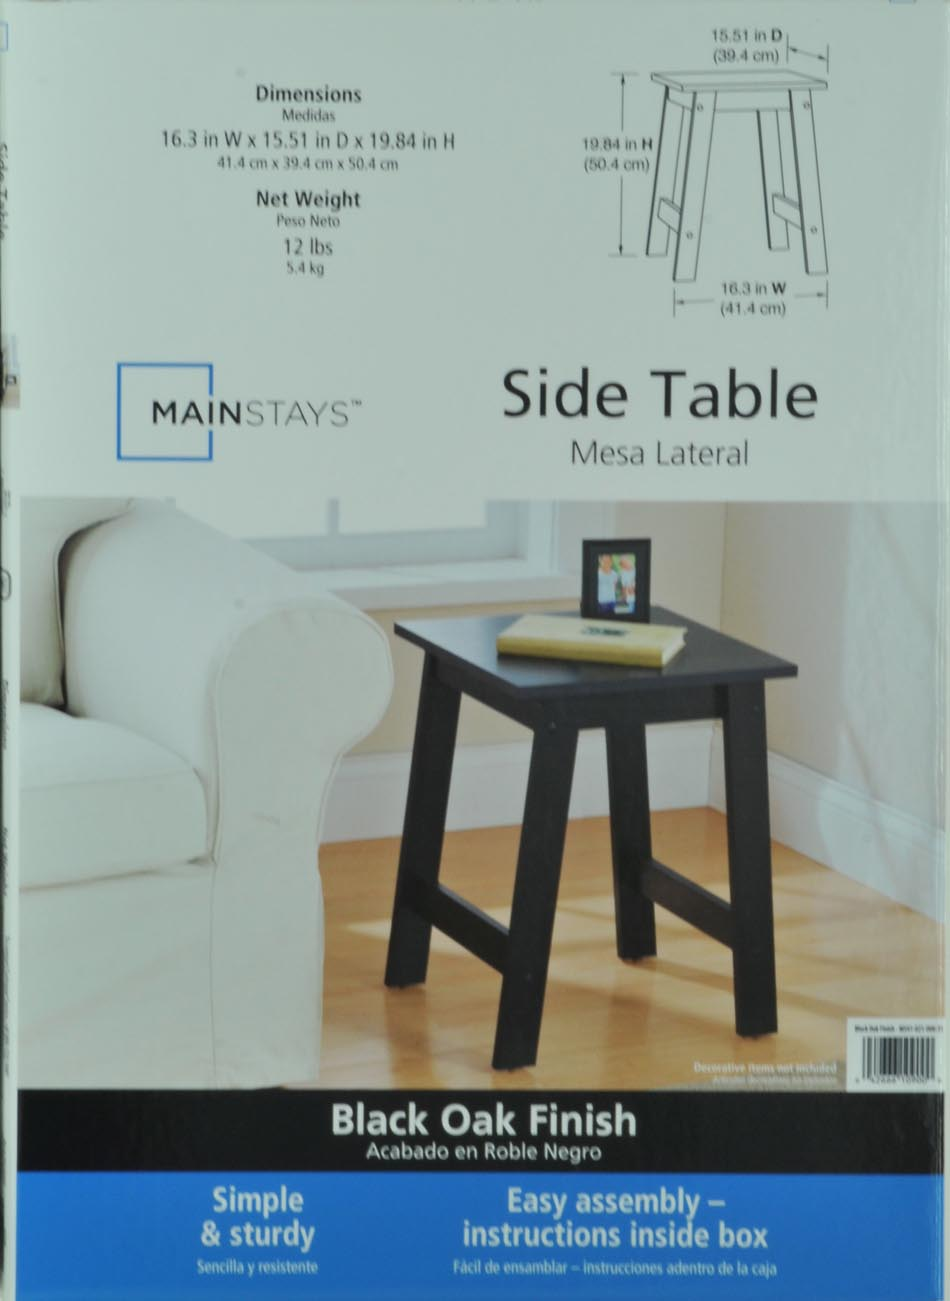 mainstays end table black oak finish ikea leather couch affordable contemporary furniture split travel guide paint color for brown sofa tree stump night stand small glass